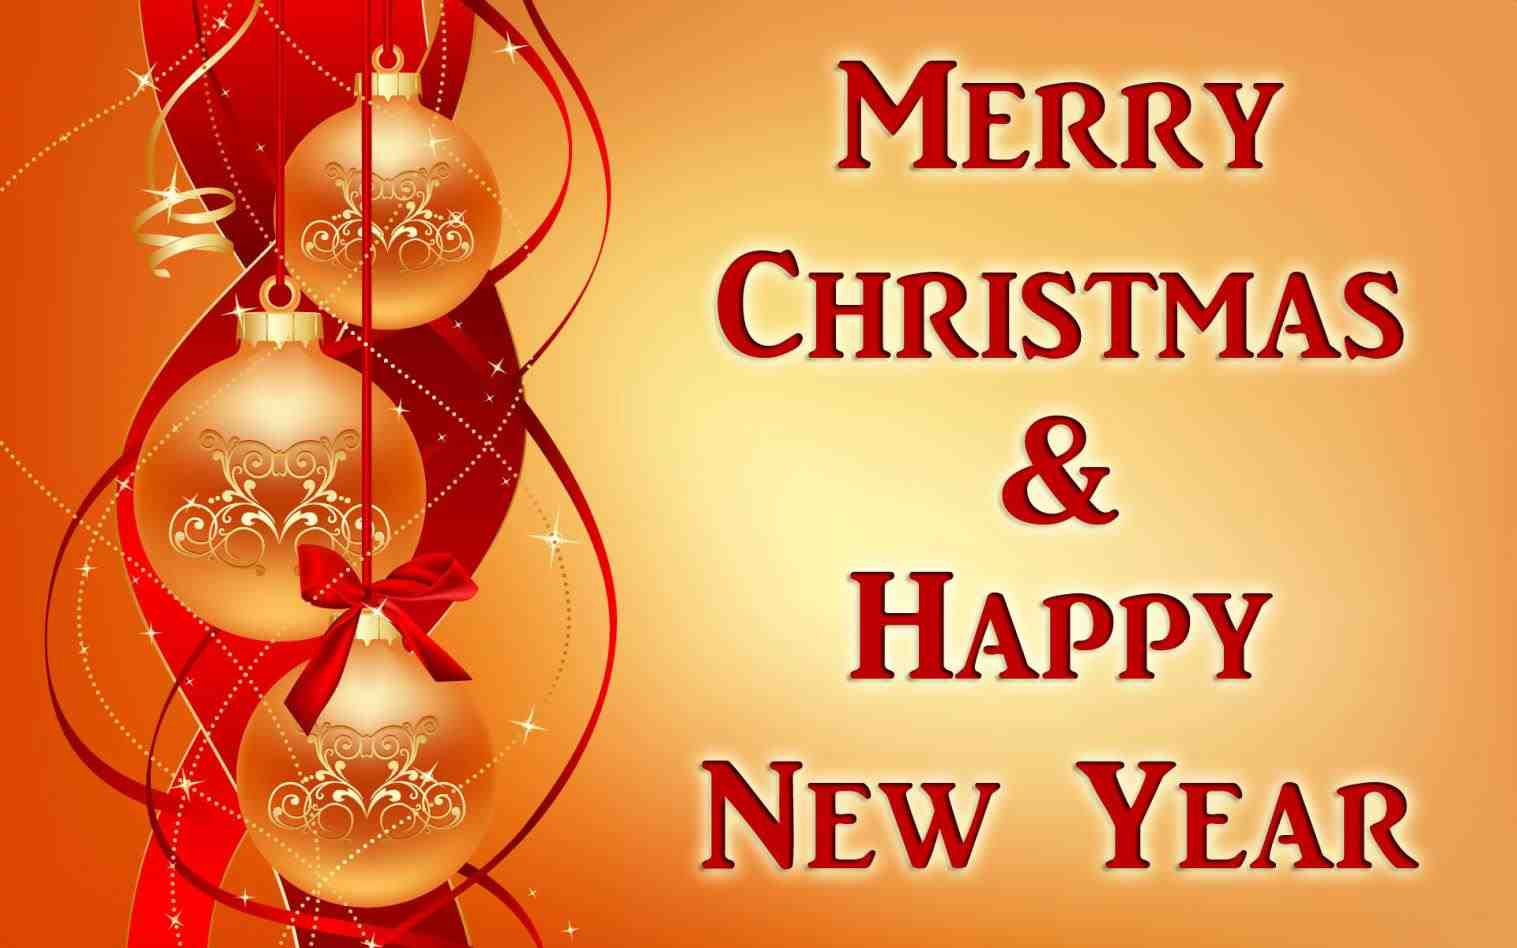 Merry christmas and happy new year wishes greetings